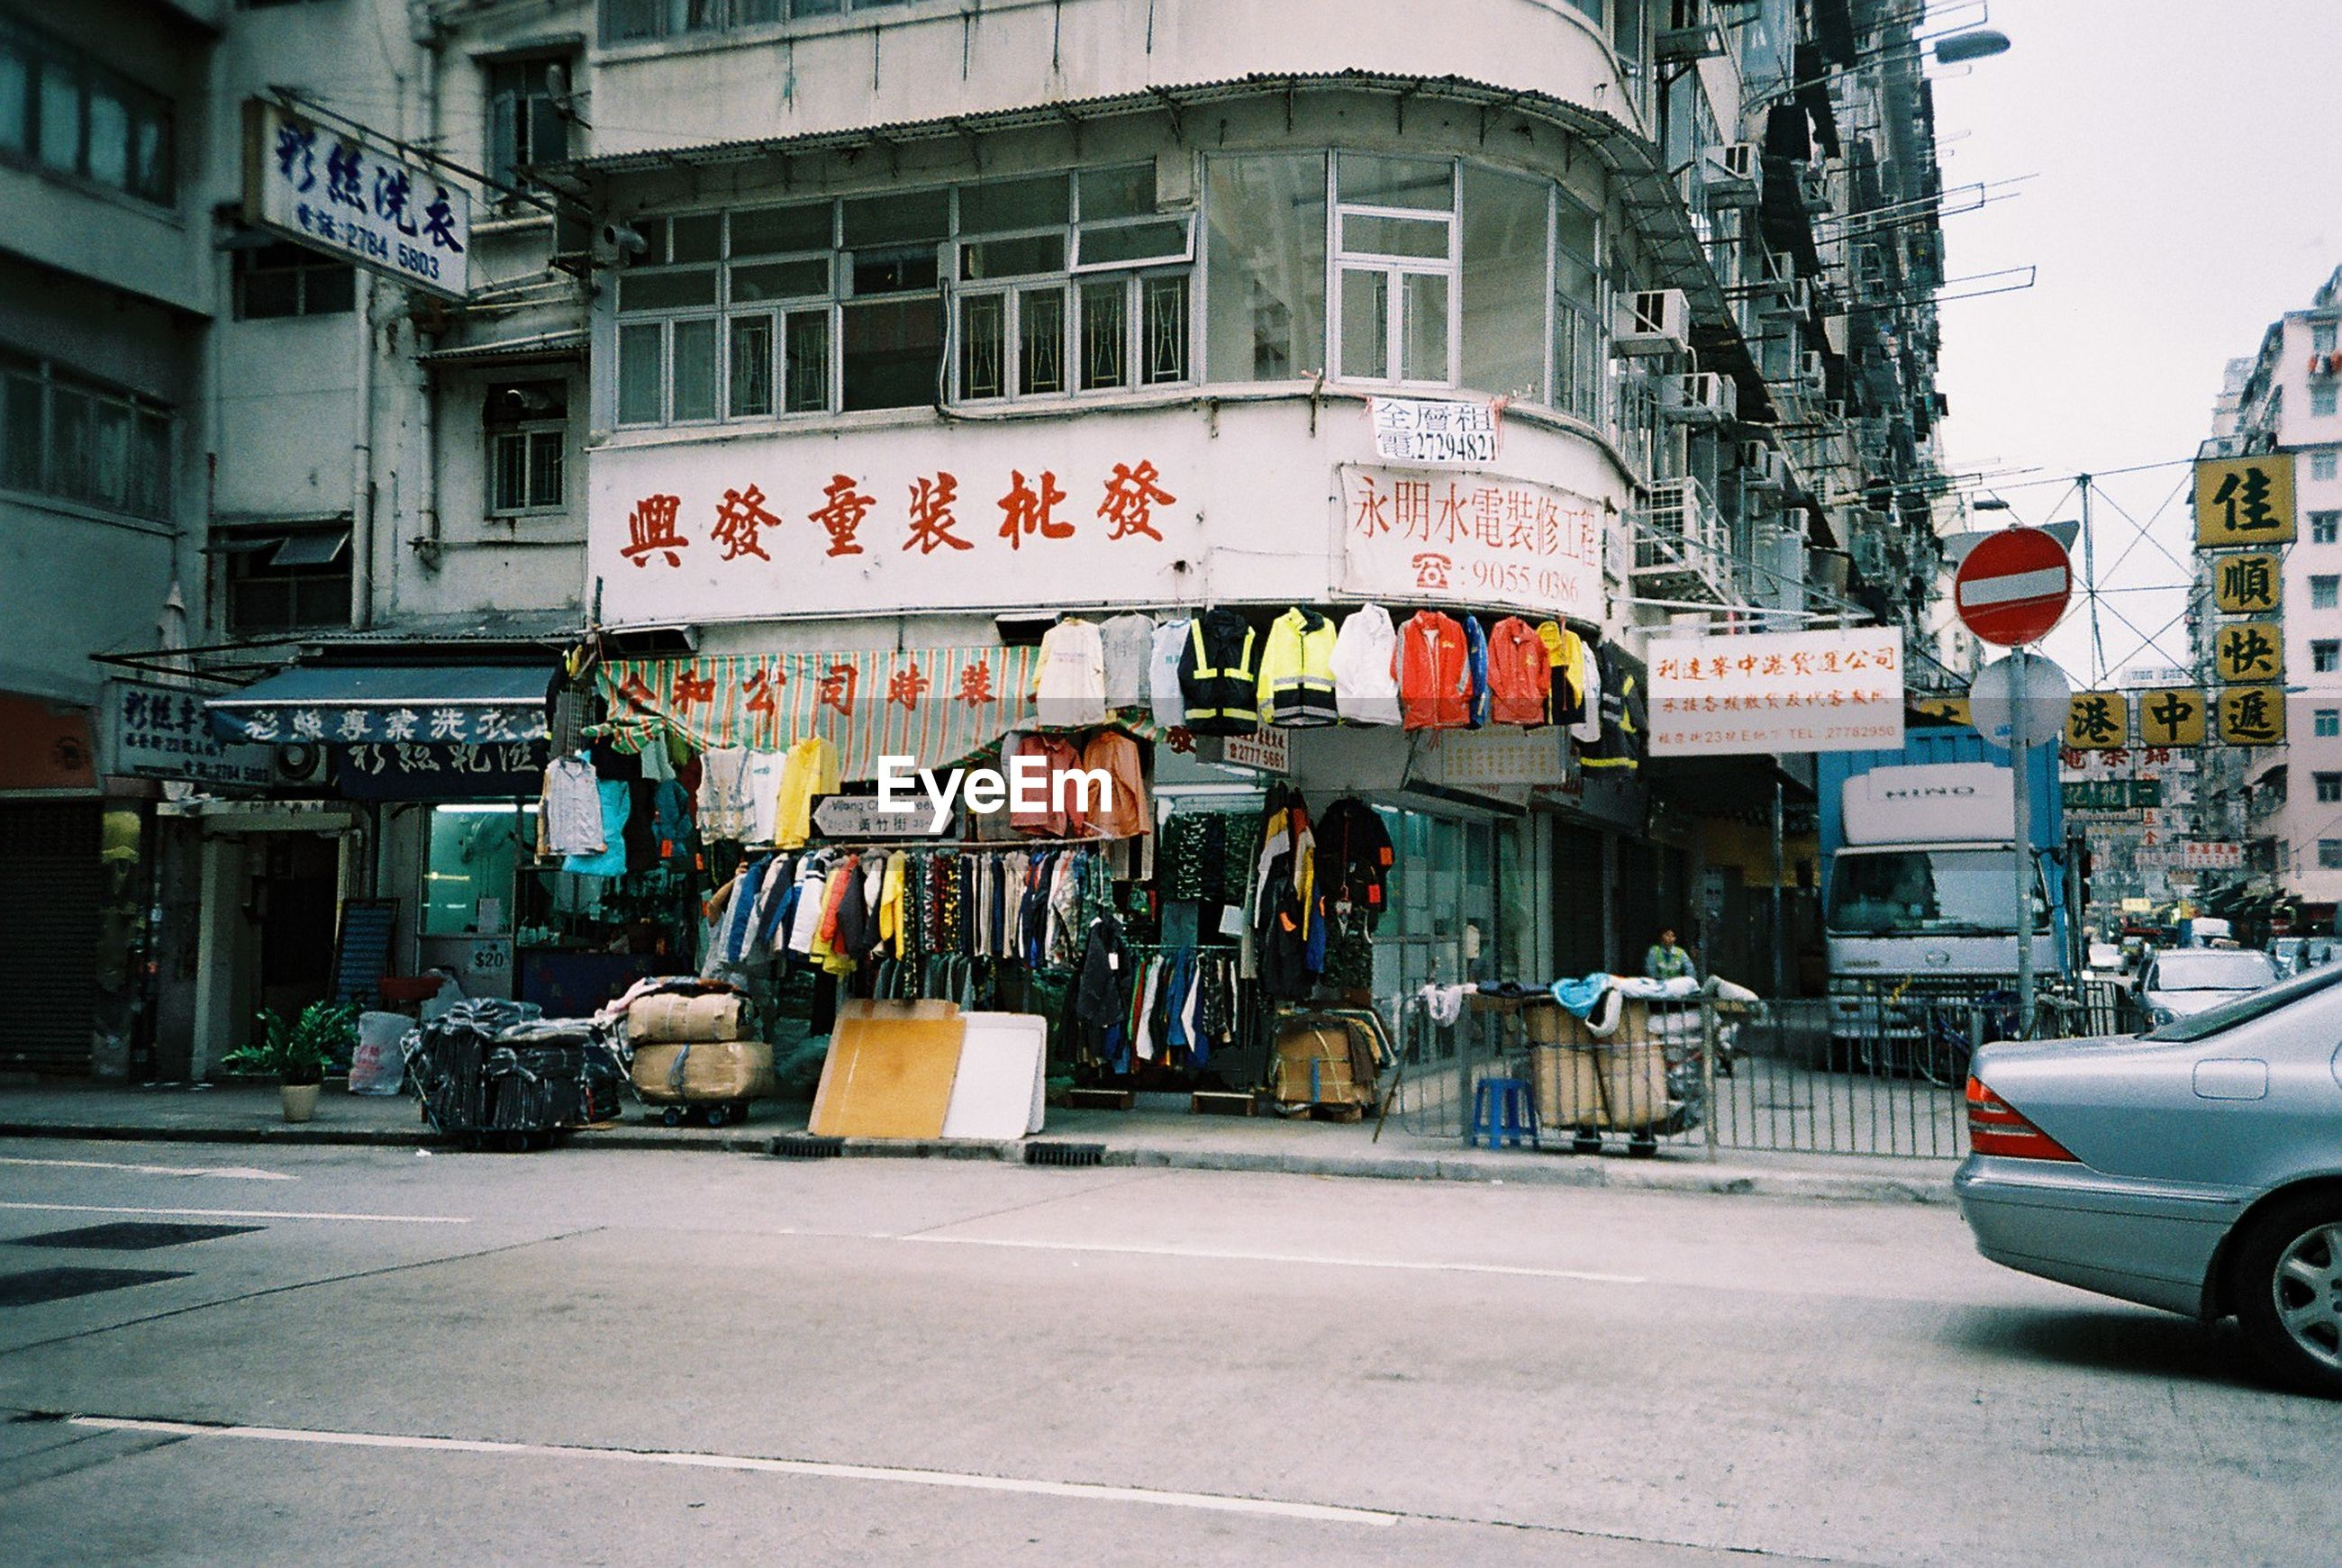 Clothe selling on street